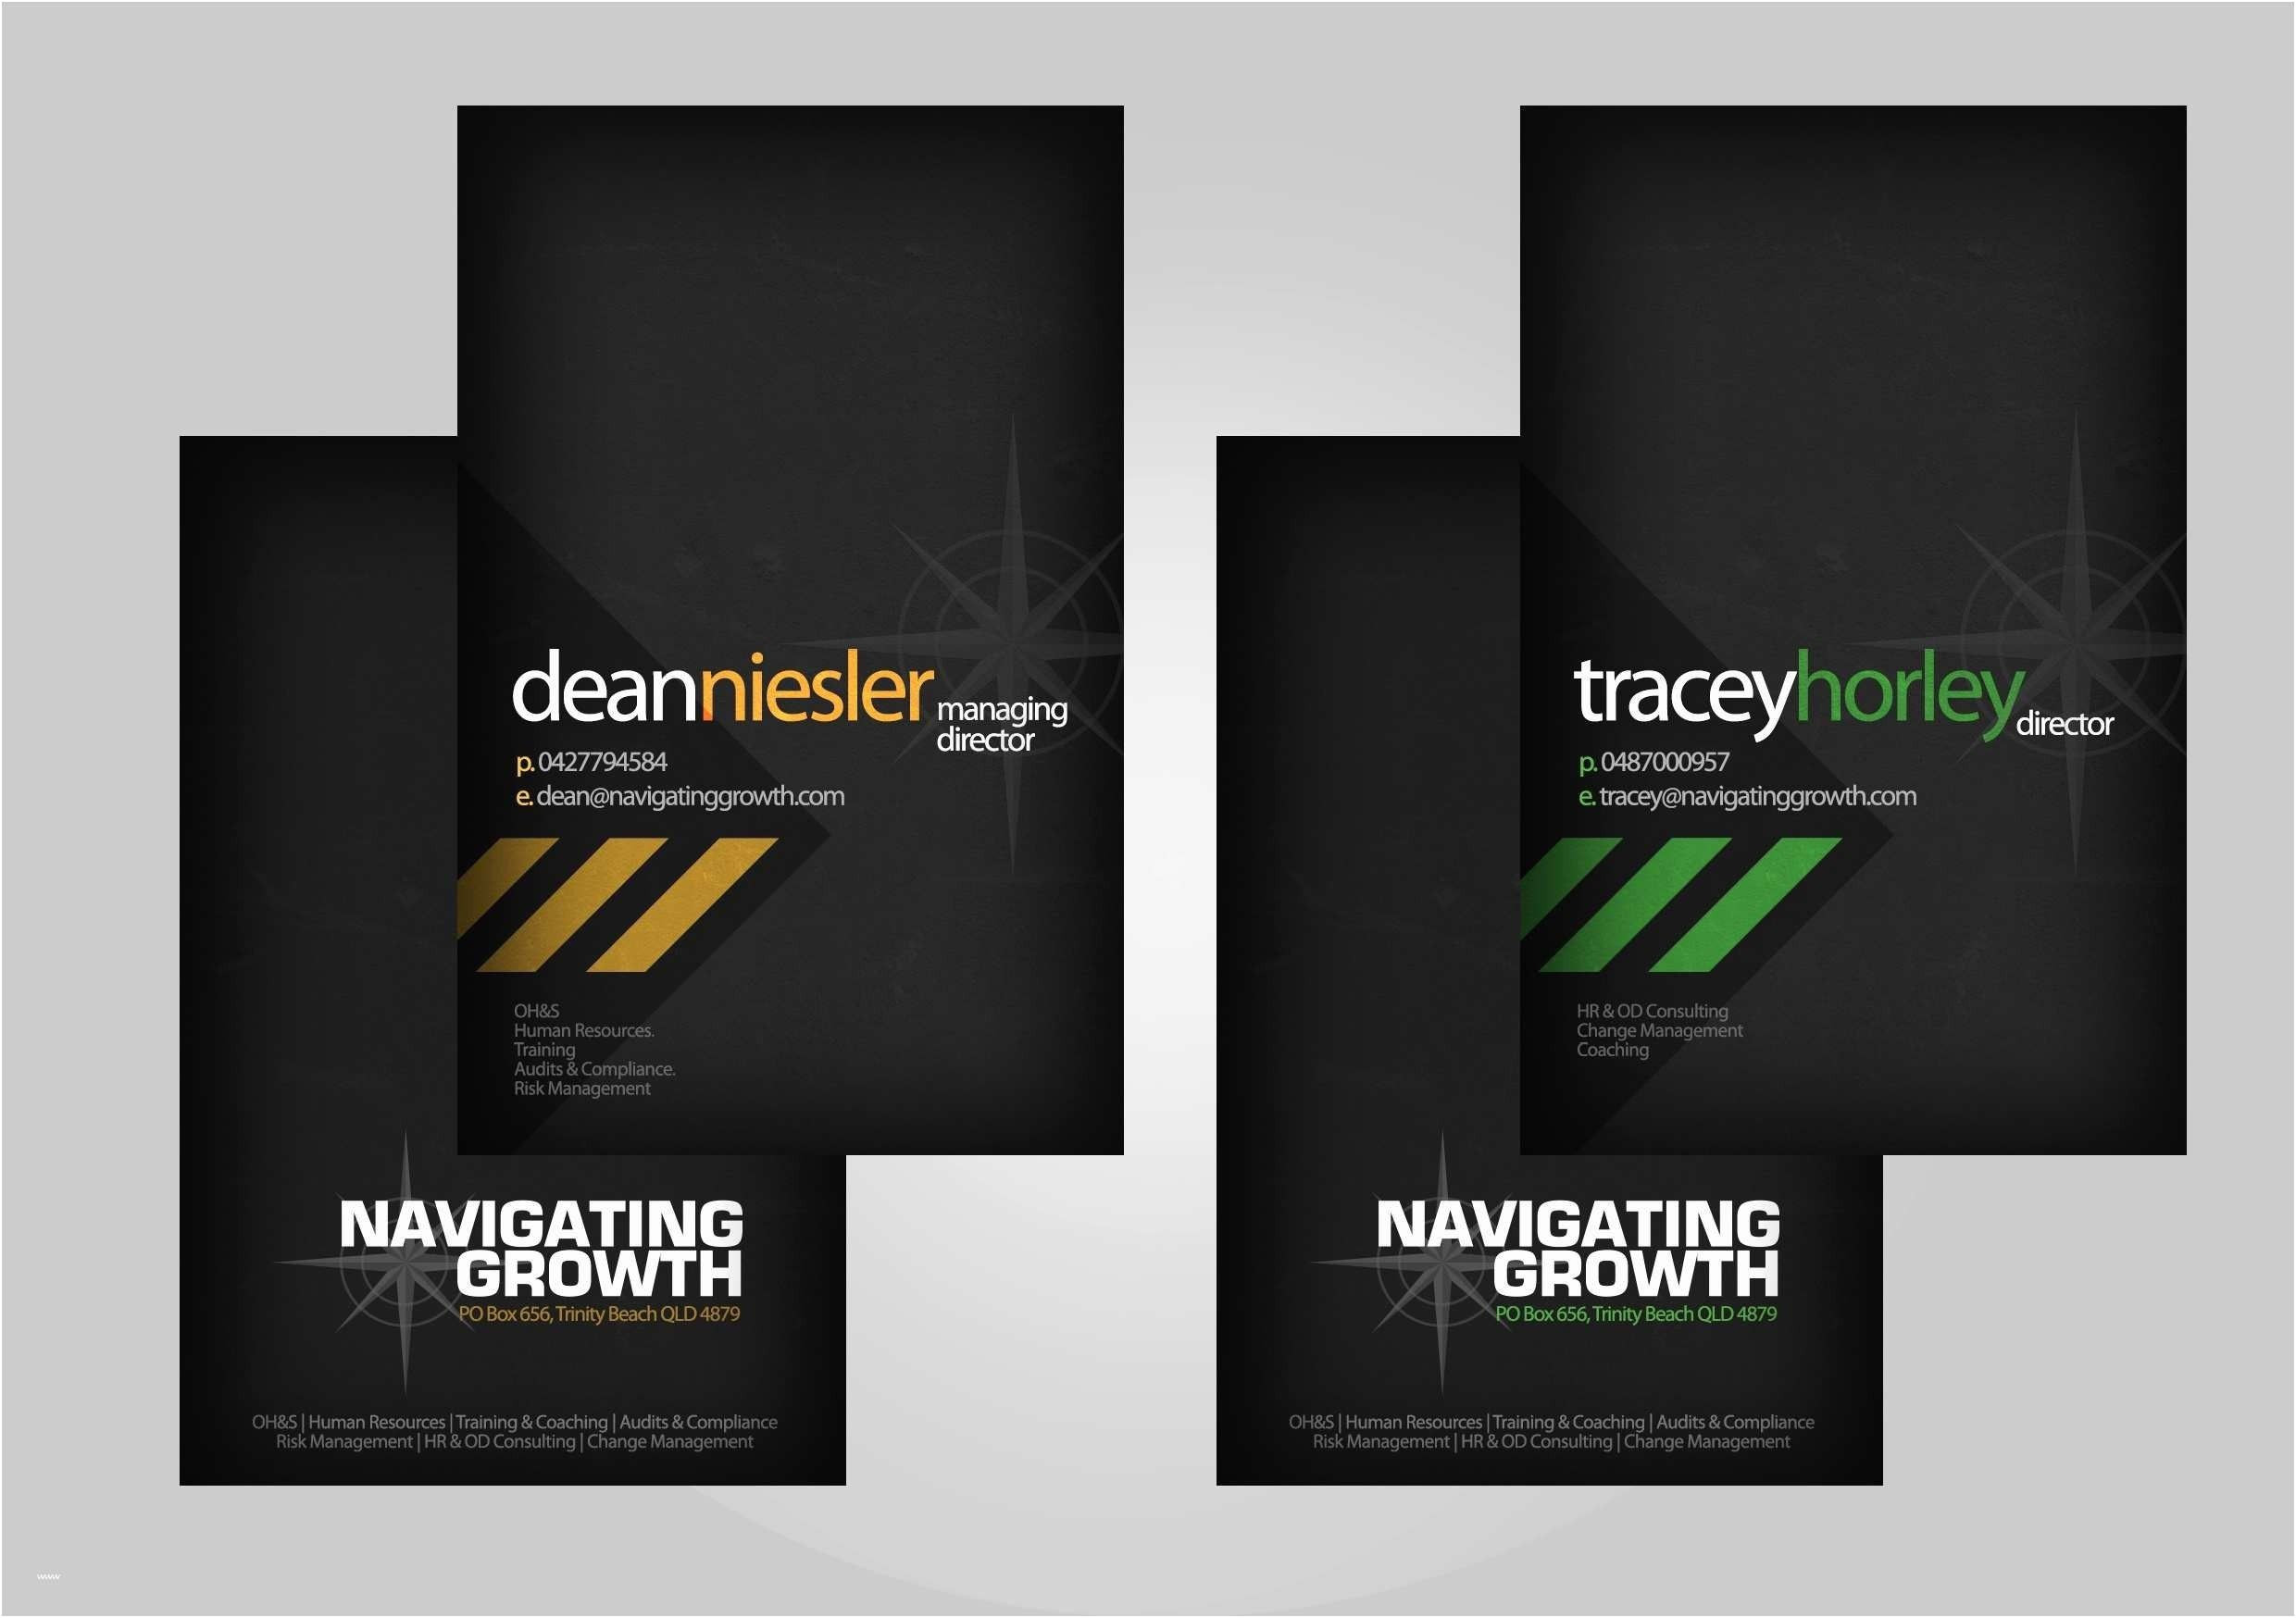 Template Business Card Free Download Lawn Care Business Card Templates with Images Business